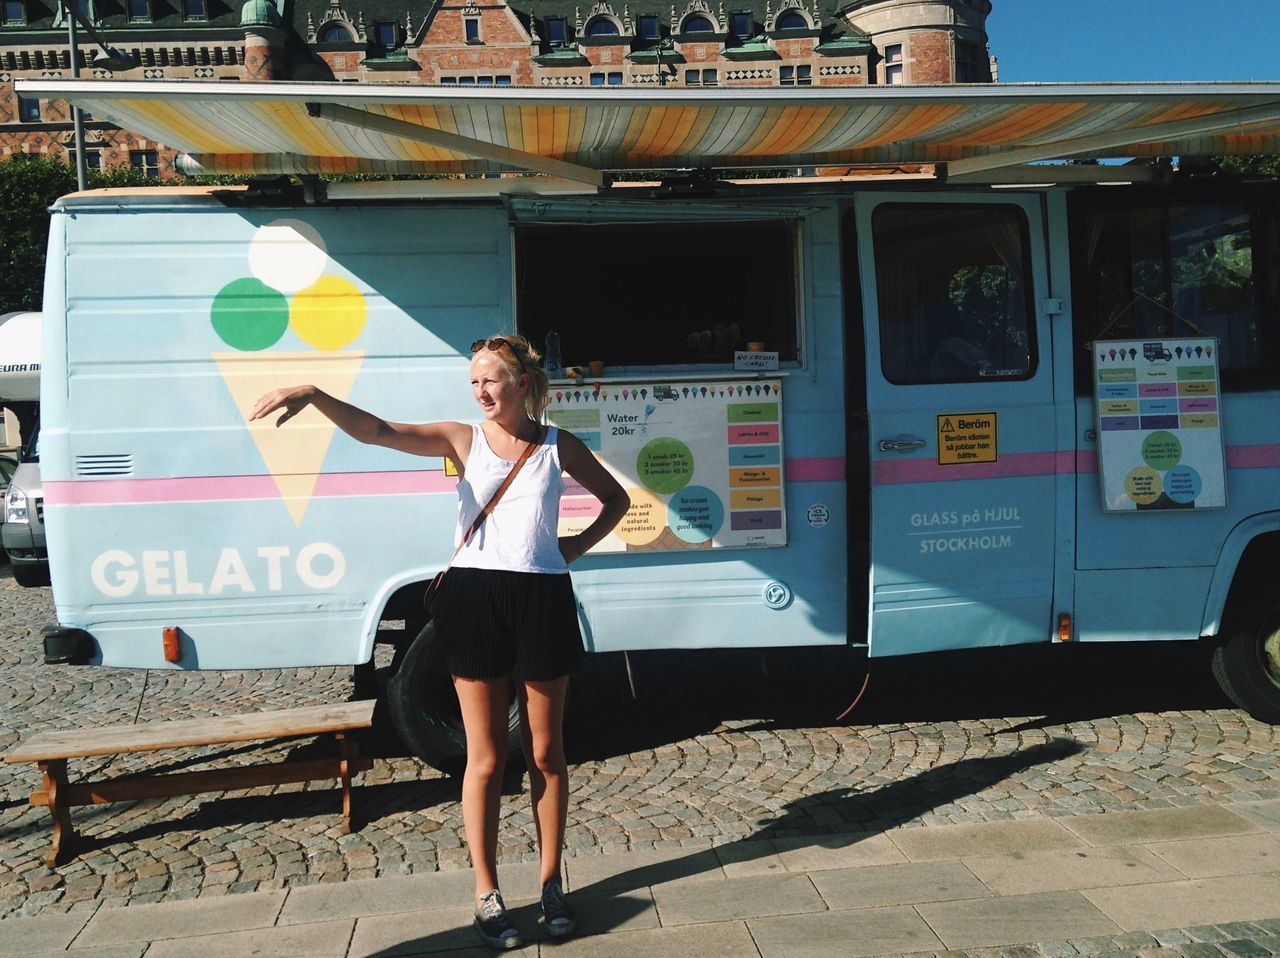 Gelato Over There It Really Kills Me Wen Girls Do That Like What Are U Pointing At Ice Cream Truck